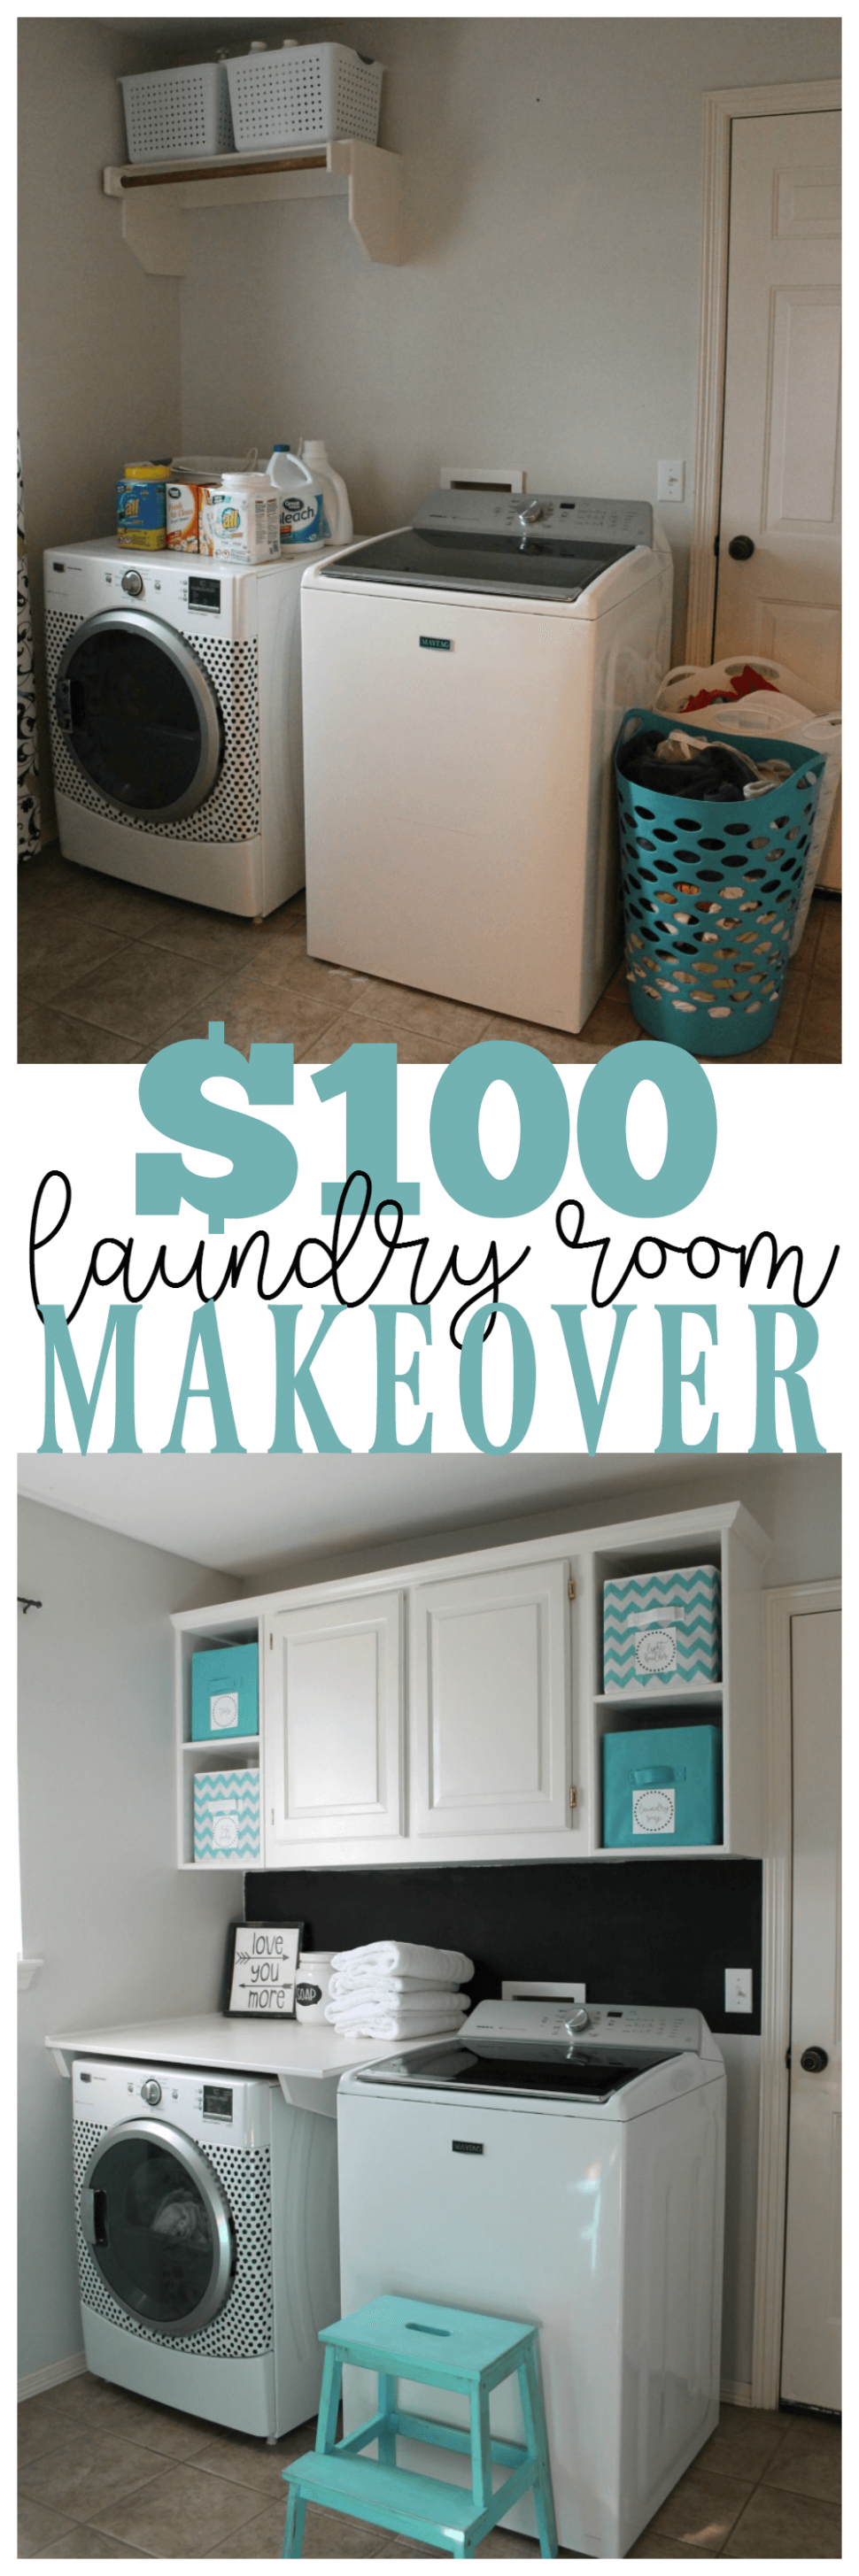 8 Before and After: Budget Friendly Laundry Room Makeover Ideas ...